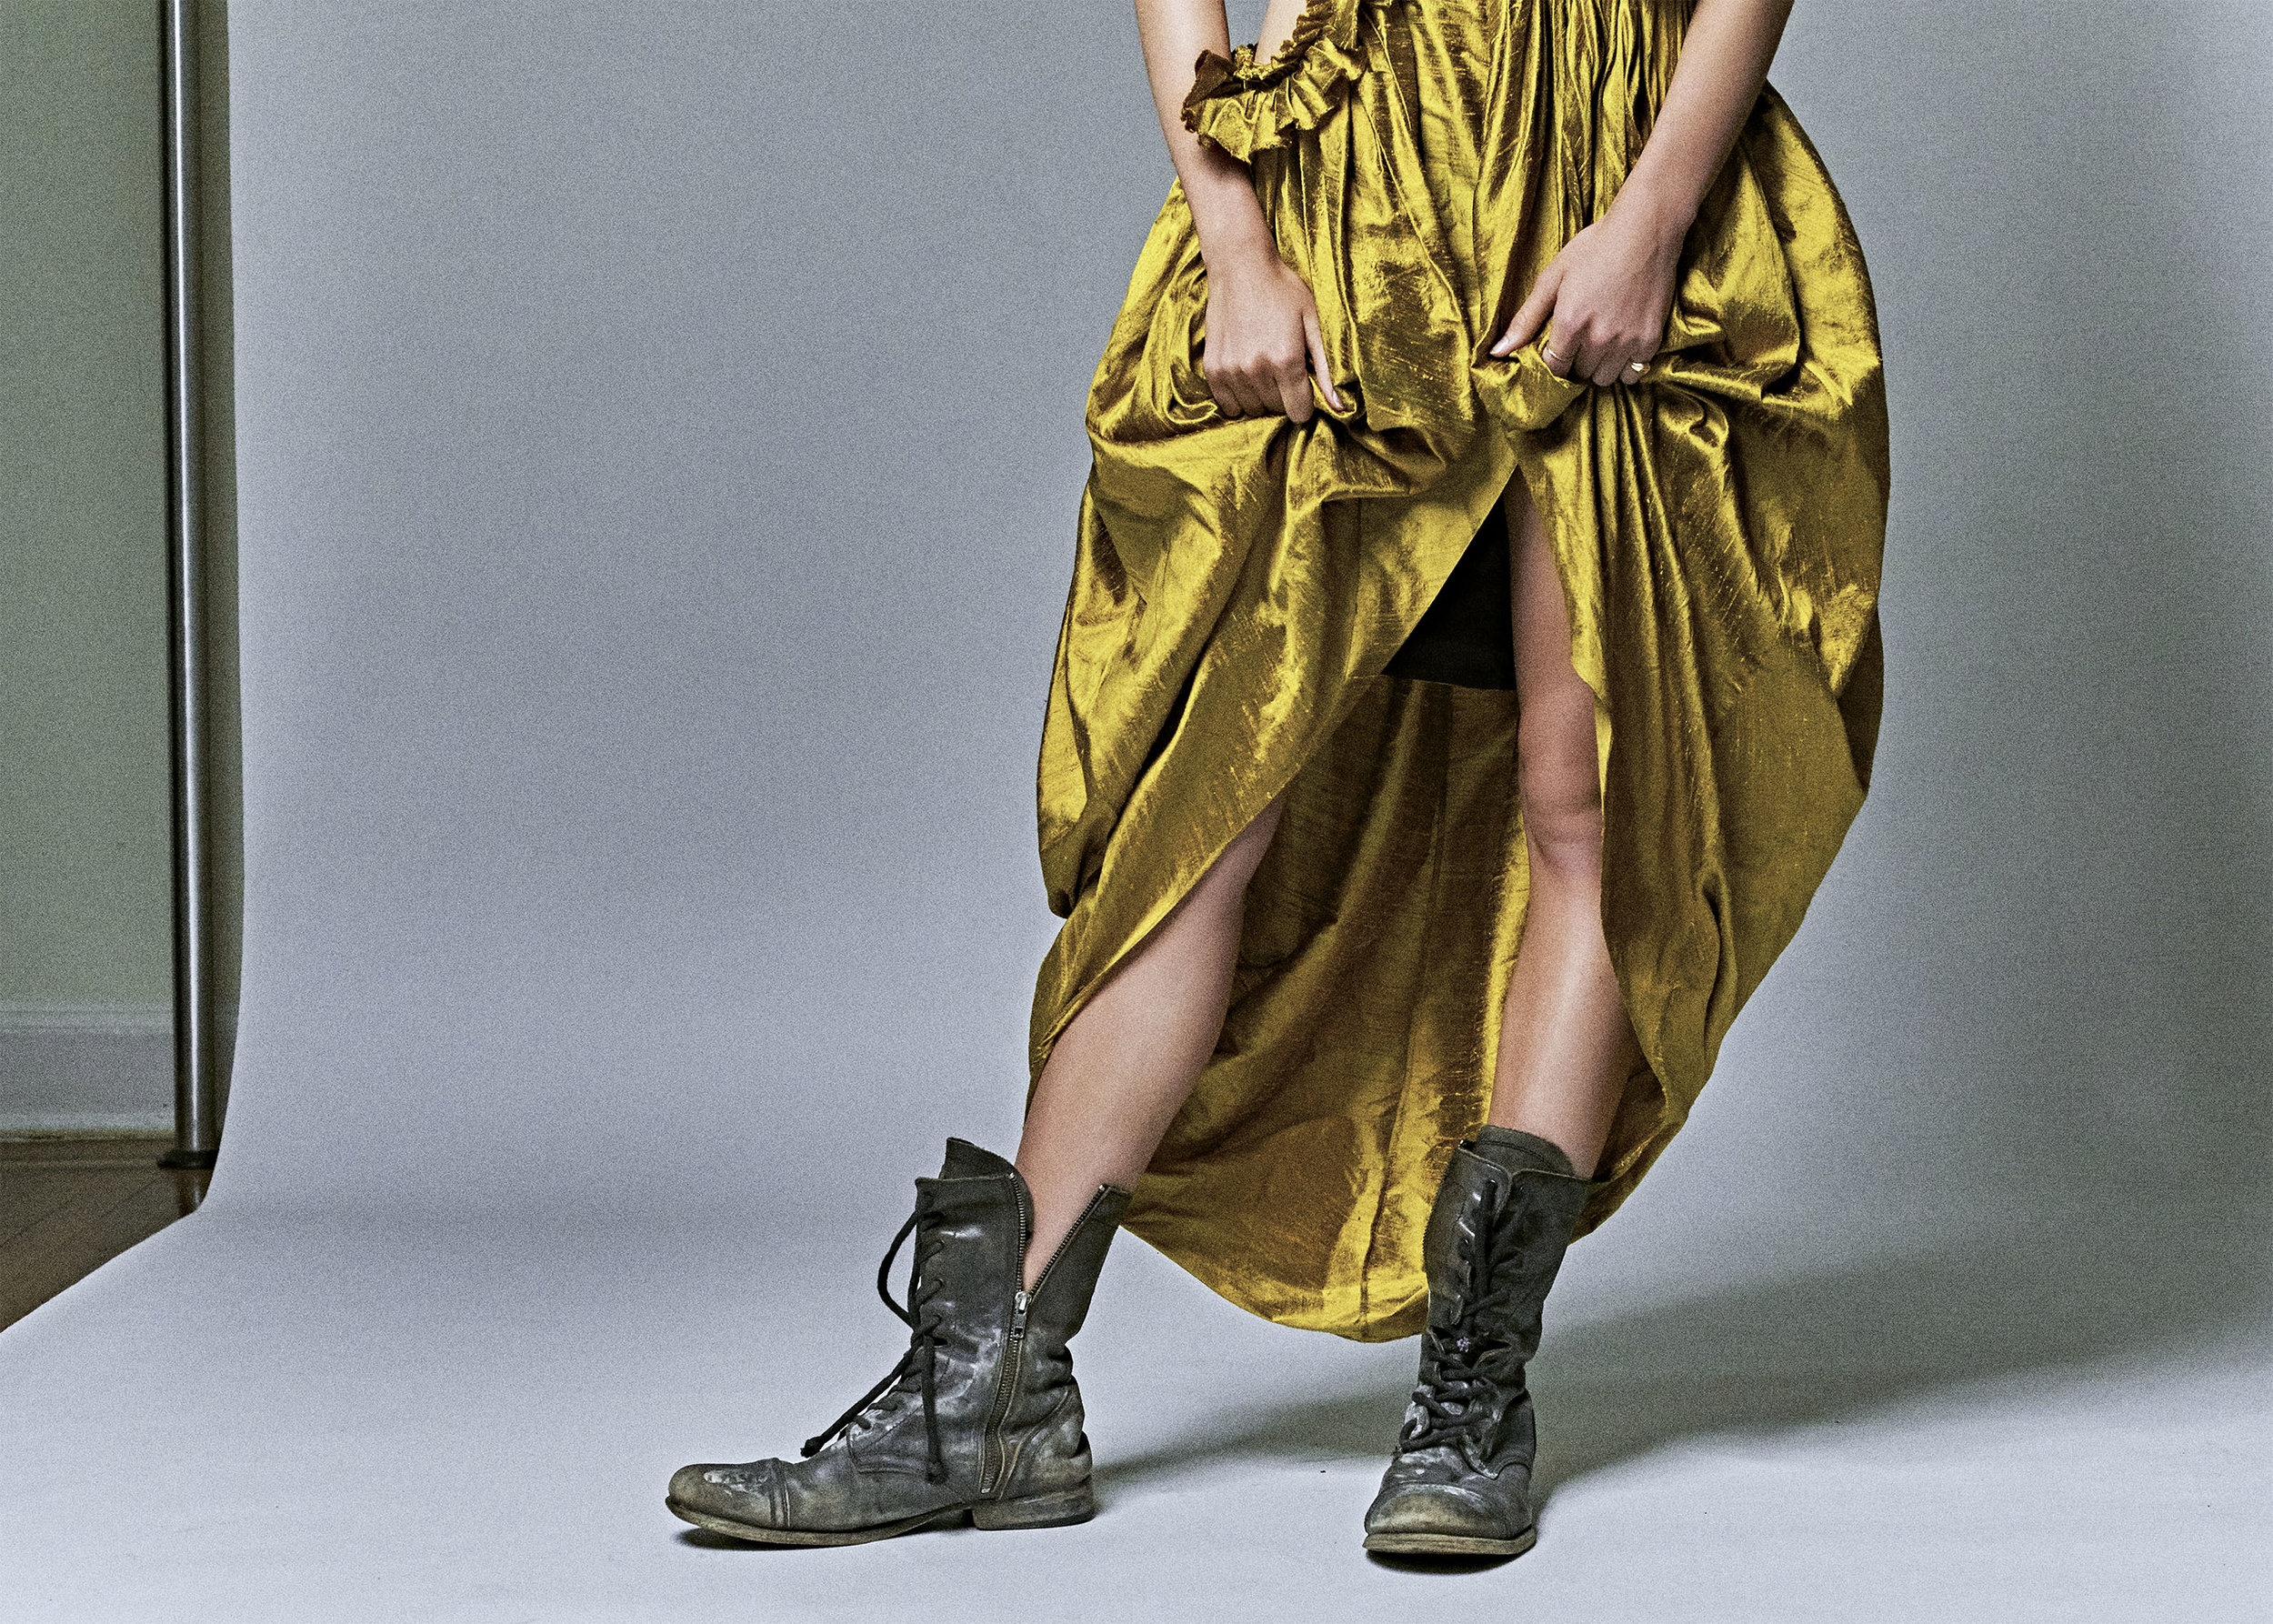 kelsey randall model gold yellow citrine raw silk shantung asymmetrical ruffle sleeve side cut out gathered ruffled flounce long gown high-low hem tulip high neck dress black leather combat boots